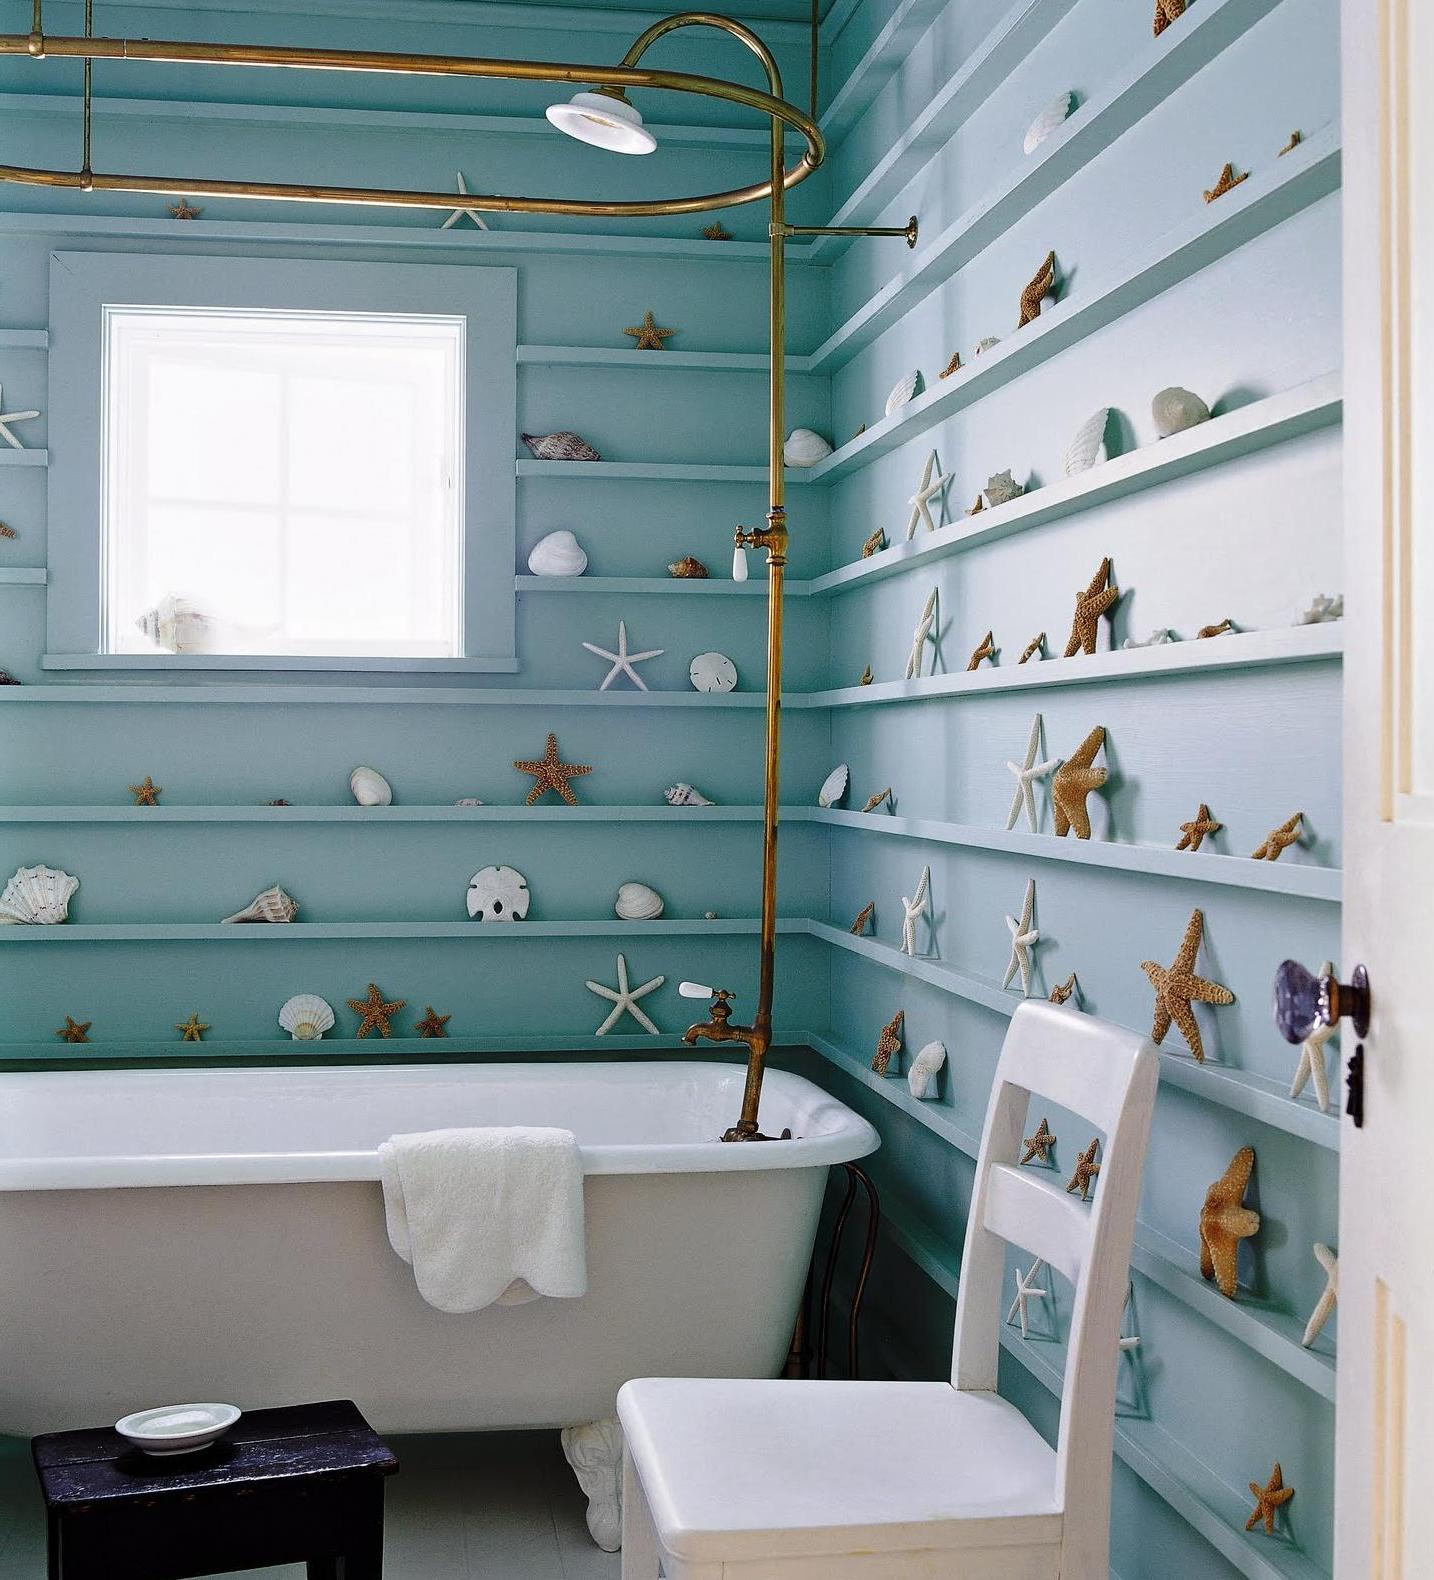 beach themed bathroom decoration ideas house interior style - Ocean Themed Home Decor